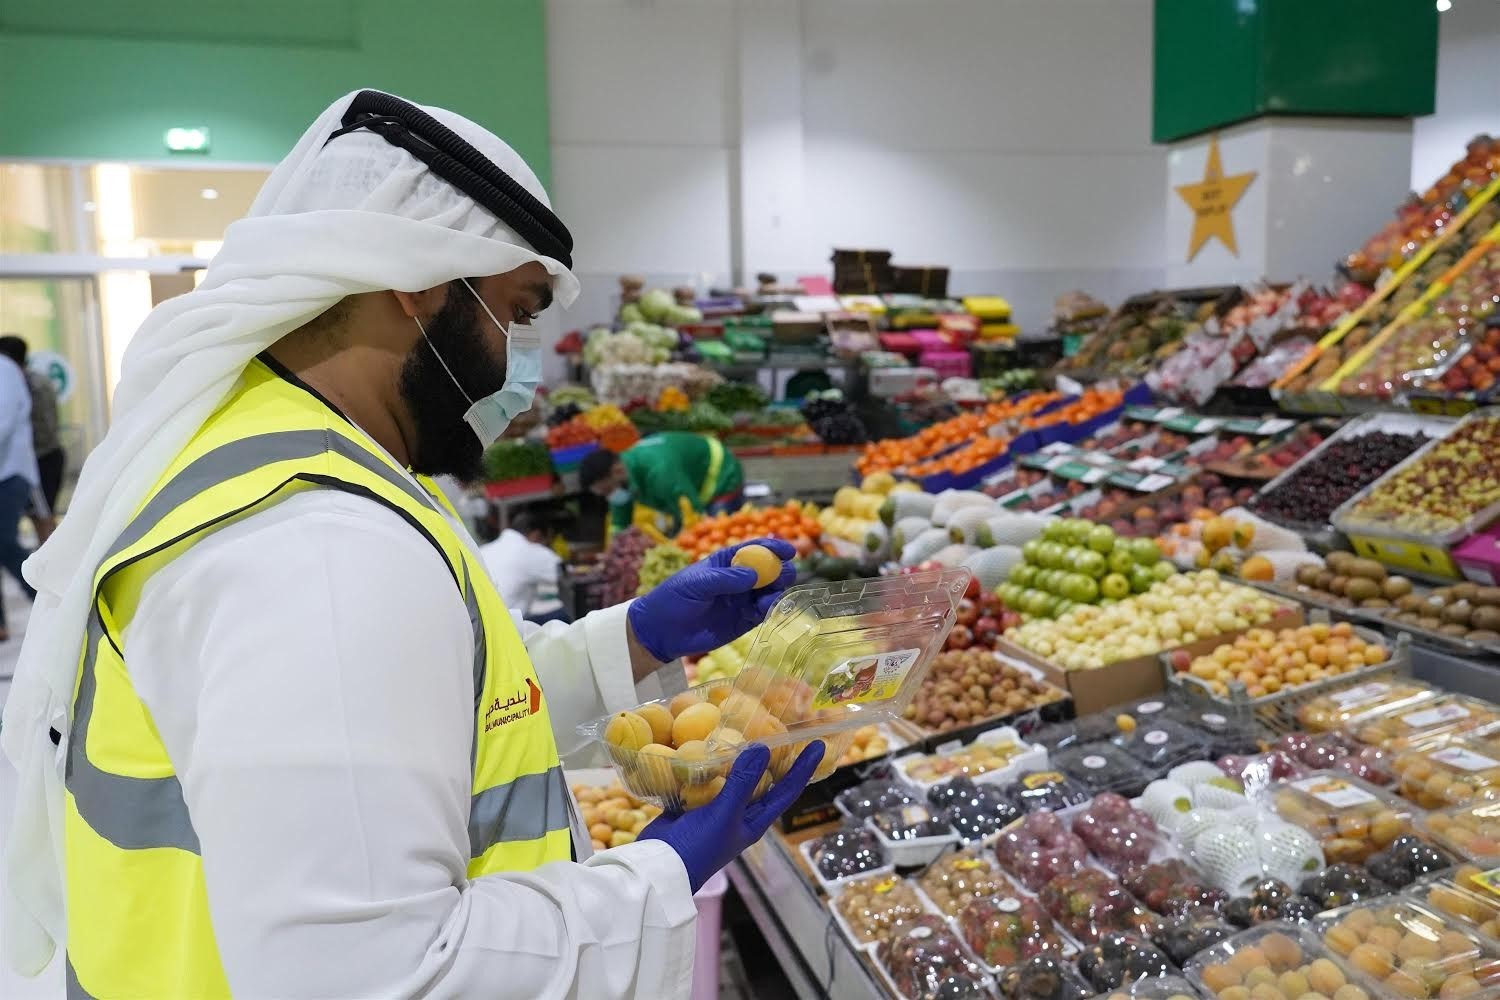 COVID has positively affected food trade sector in the Saudi markets with rise exceeding 60%